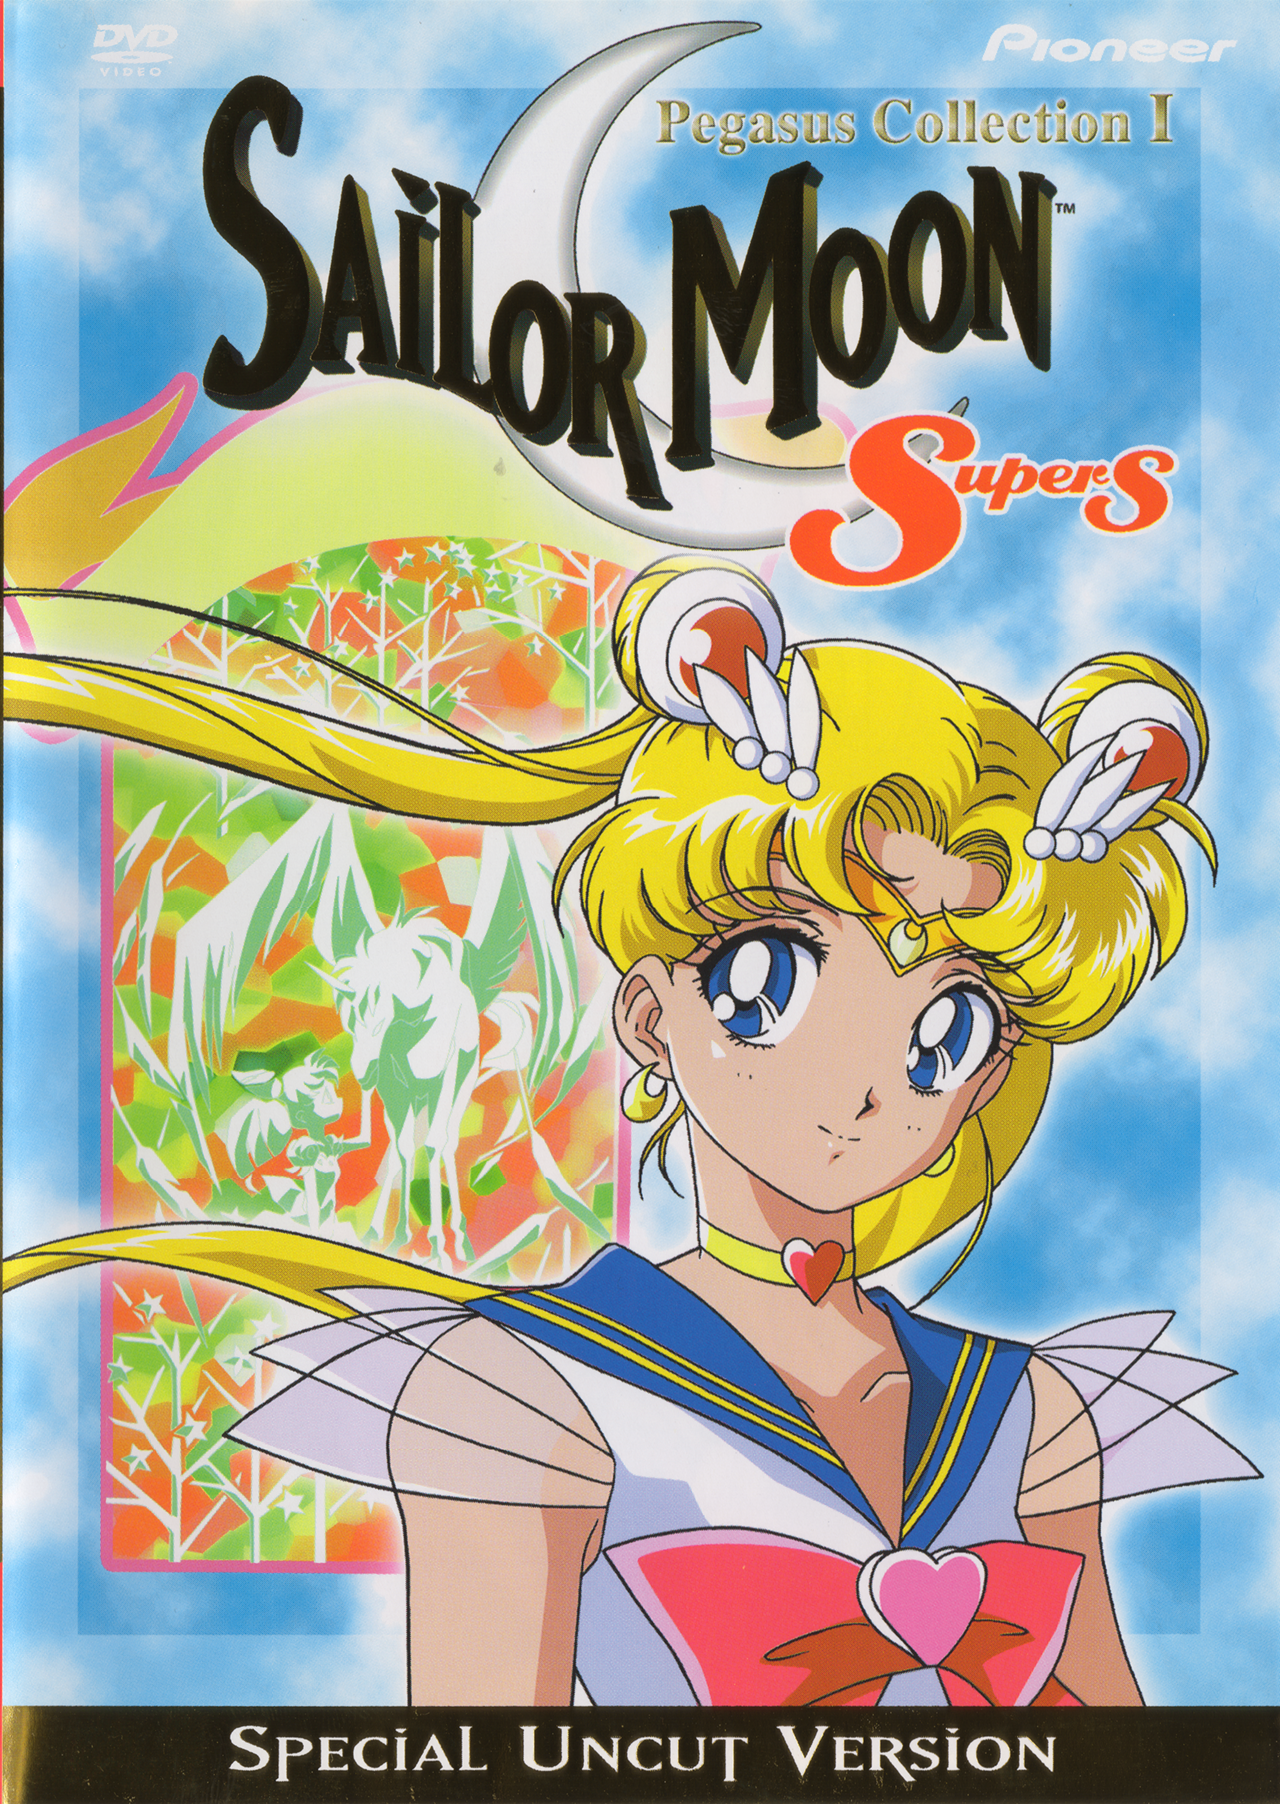 Sailor Moon SuperS - Pegasus Collection I